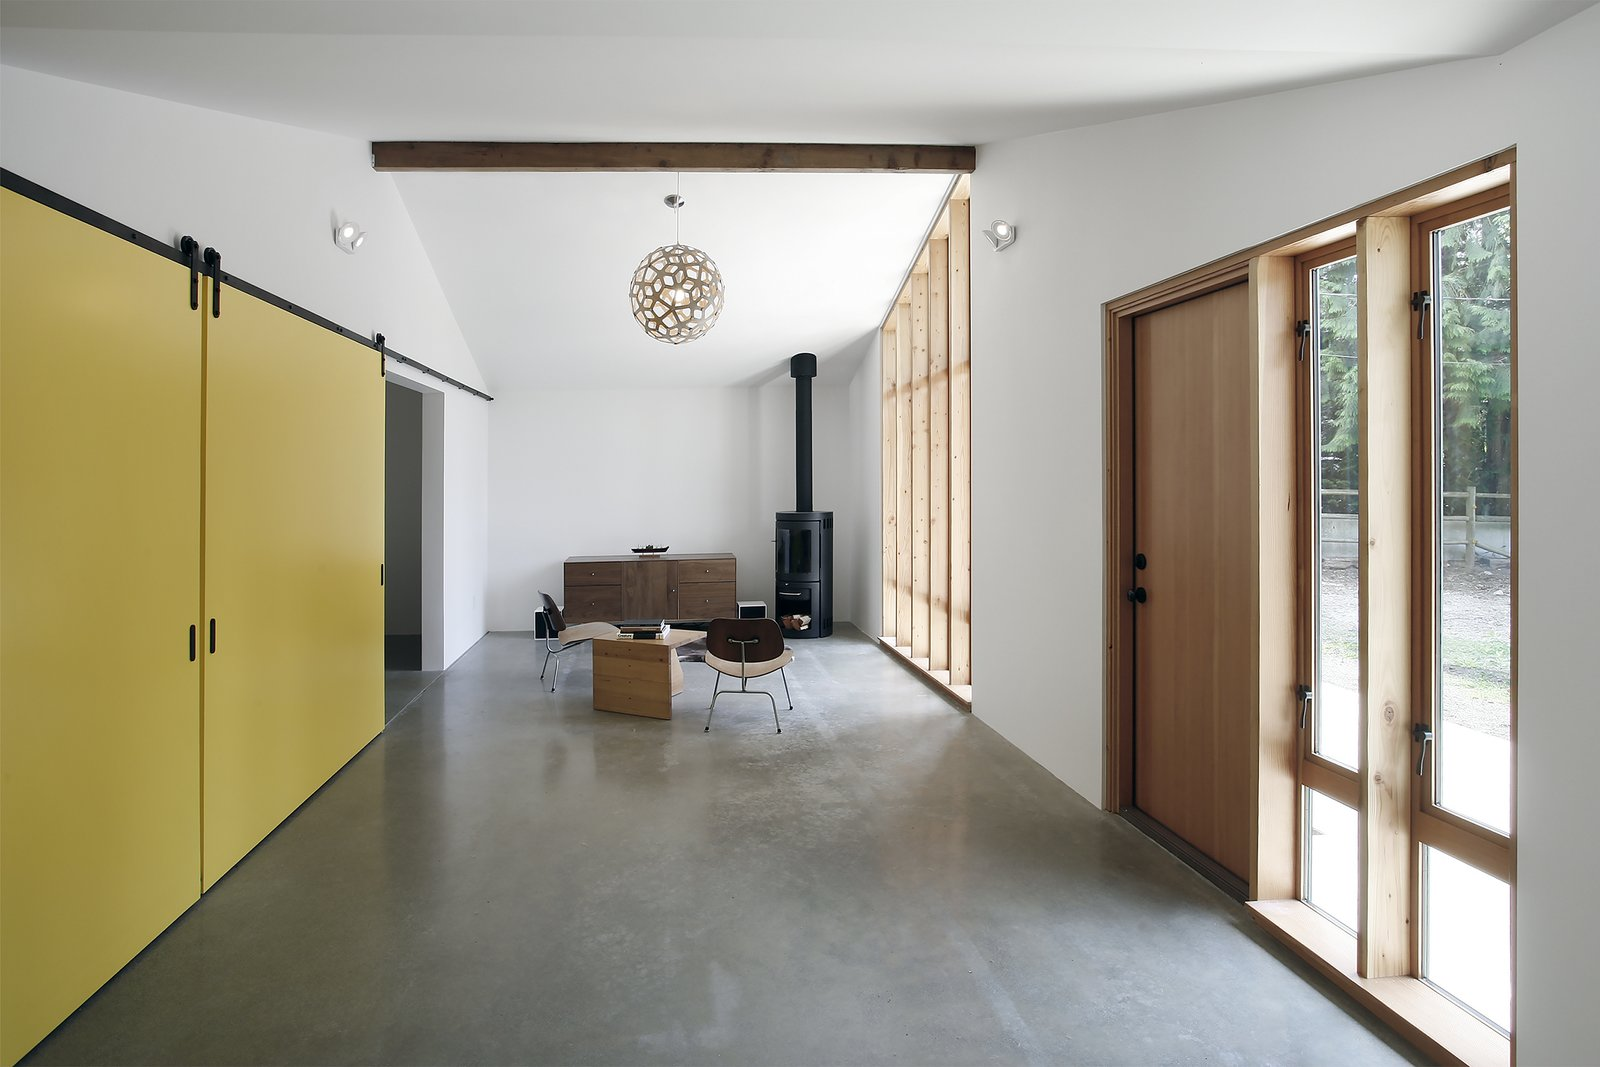 The renovated stable's living room is extra bright thanks to walls painted with Benjamin Moore's Atrium White and reflective polished concrete floors. The latter conceal a radiant heating system. Horse Stable Studio by Kelly Dawson